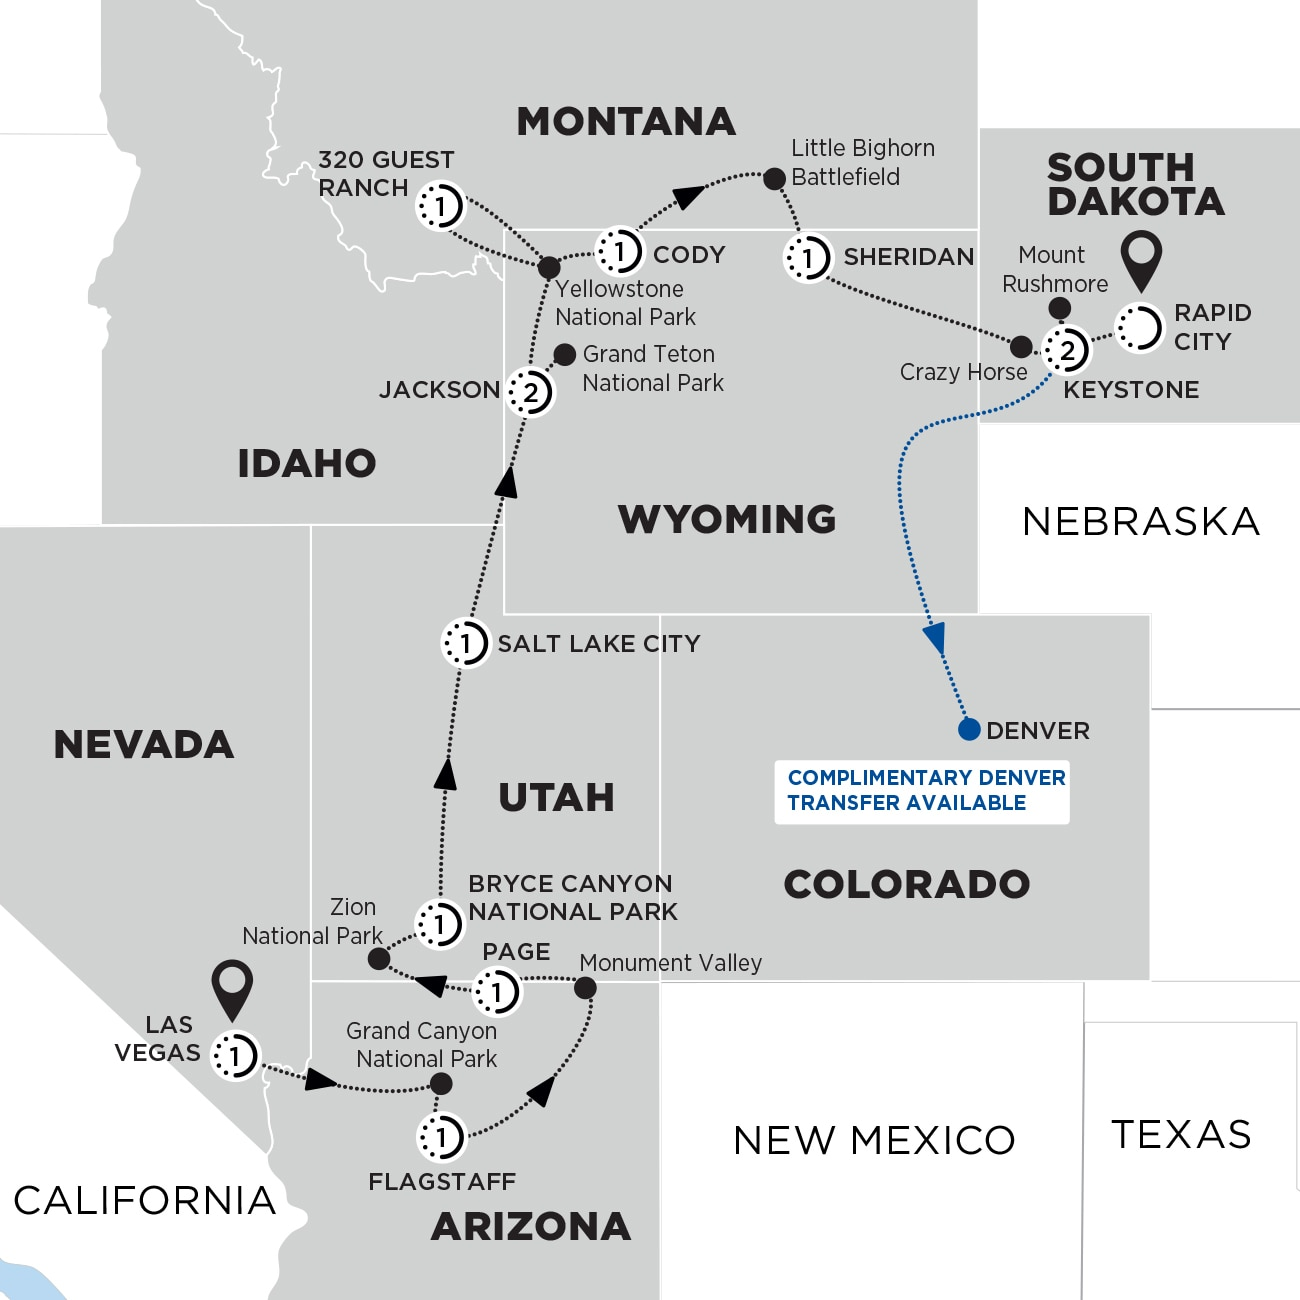 Spectacular Canyons and National Parks End Rapid City Map